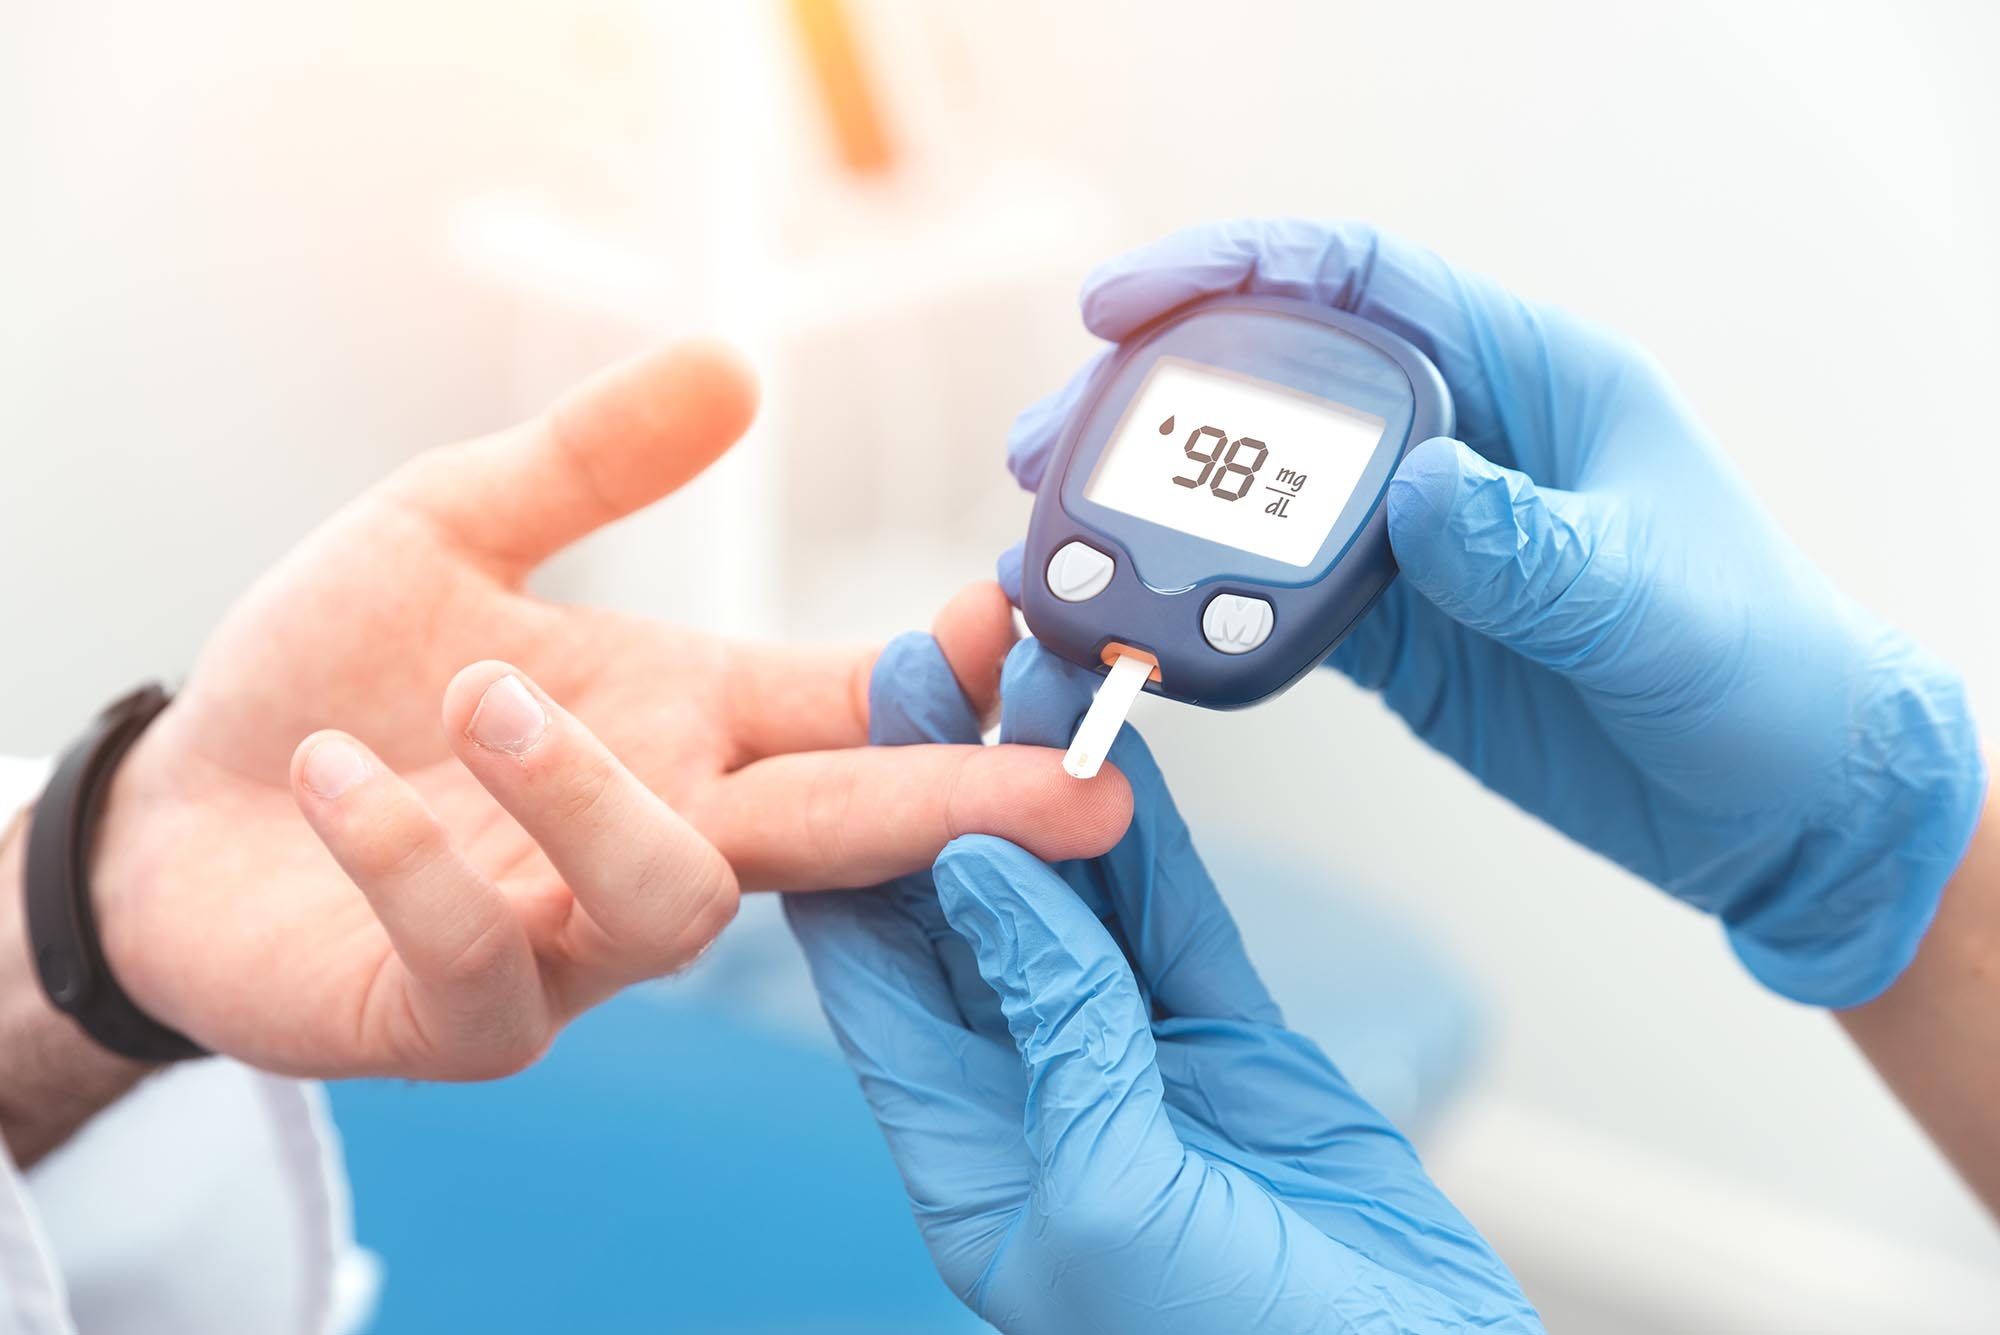 Find out how at risk you are of diabetes